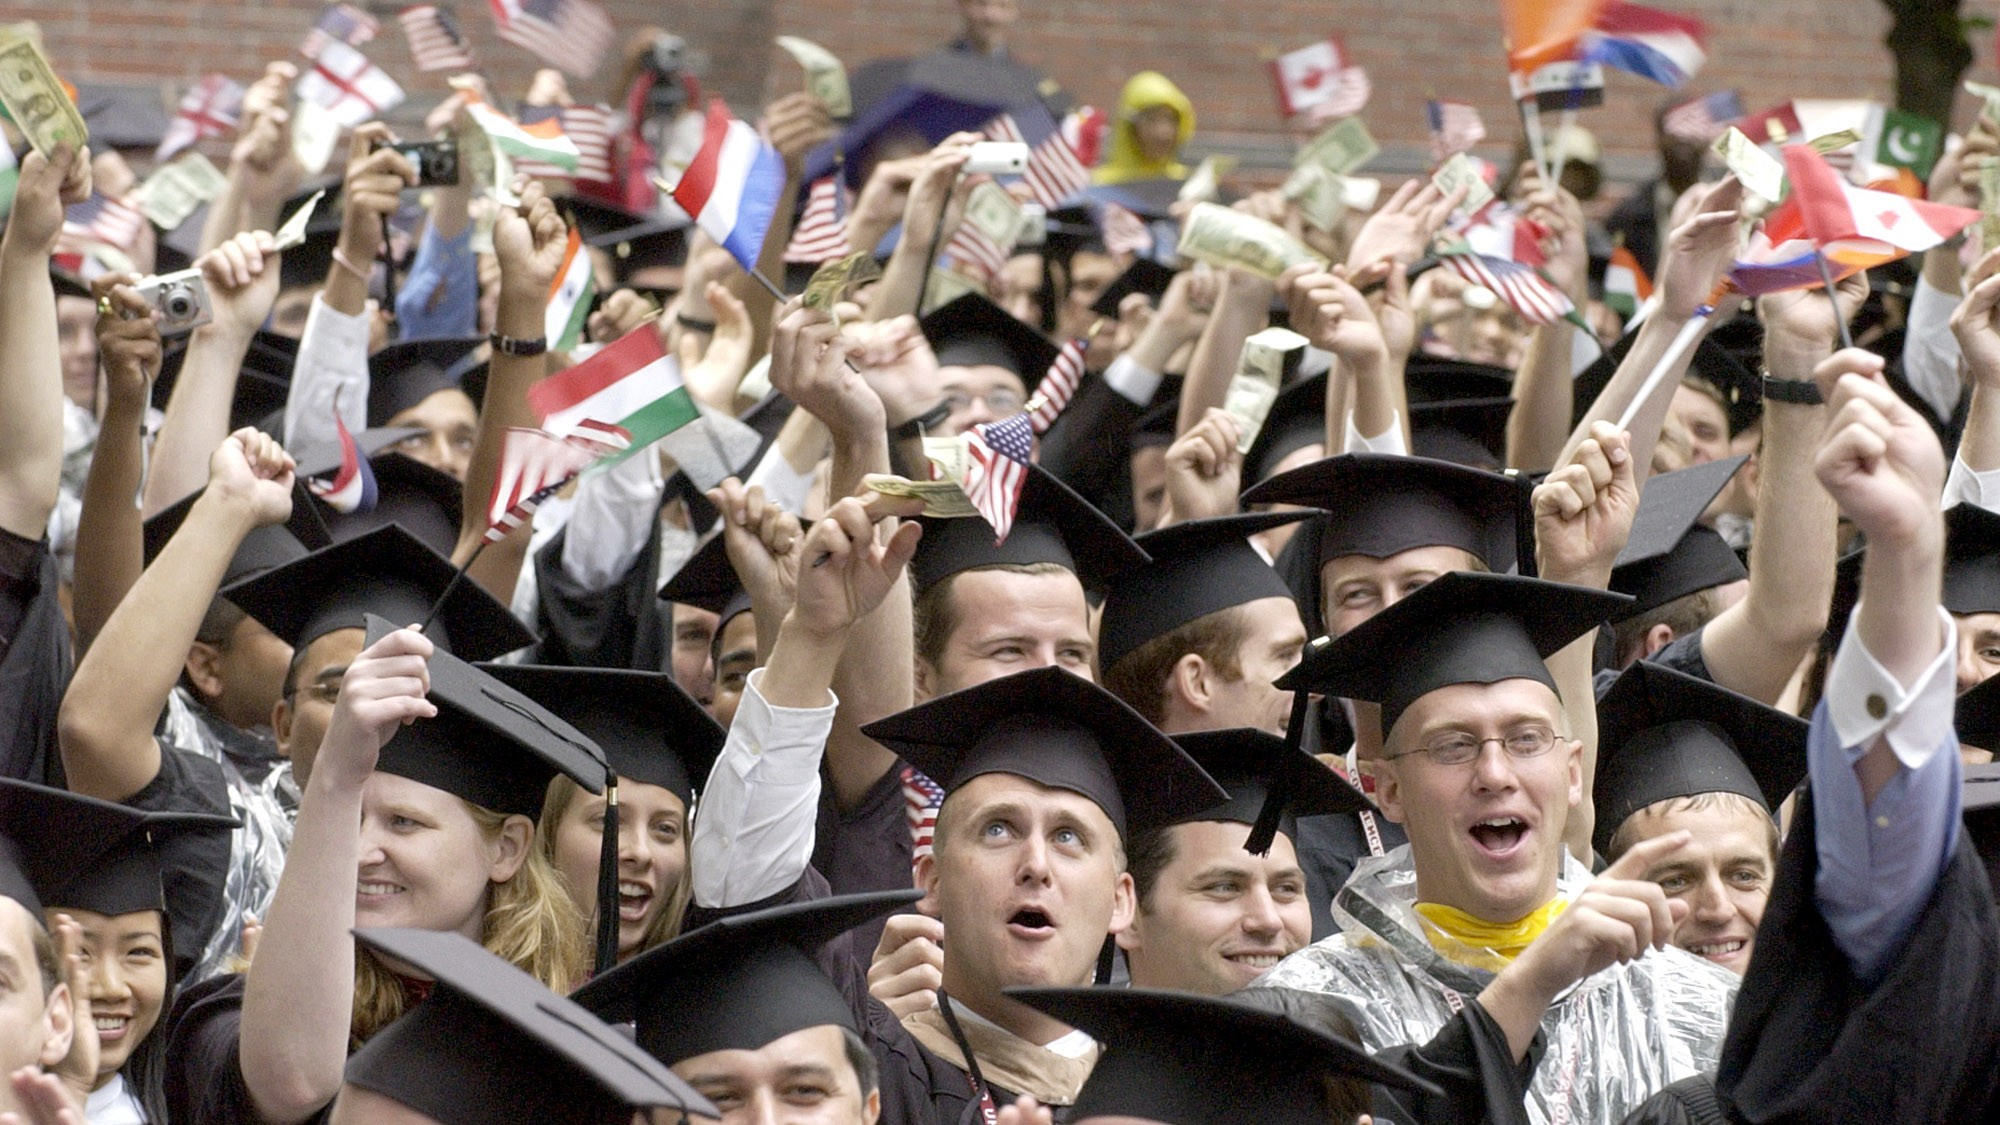 Business school graduates cheer while waving dollar bills and flags during Harvard University's 353rd commencement ceremonies, Thursday, June 10, 2004, in Cambridge, Mass. (AP Photo/Michael Dwyer)